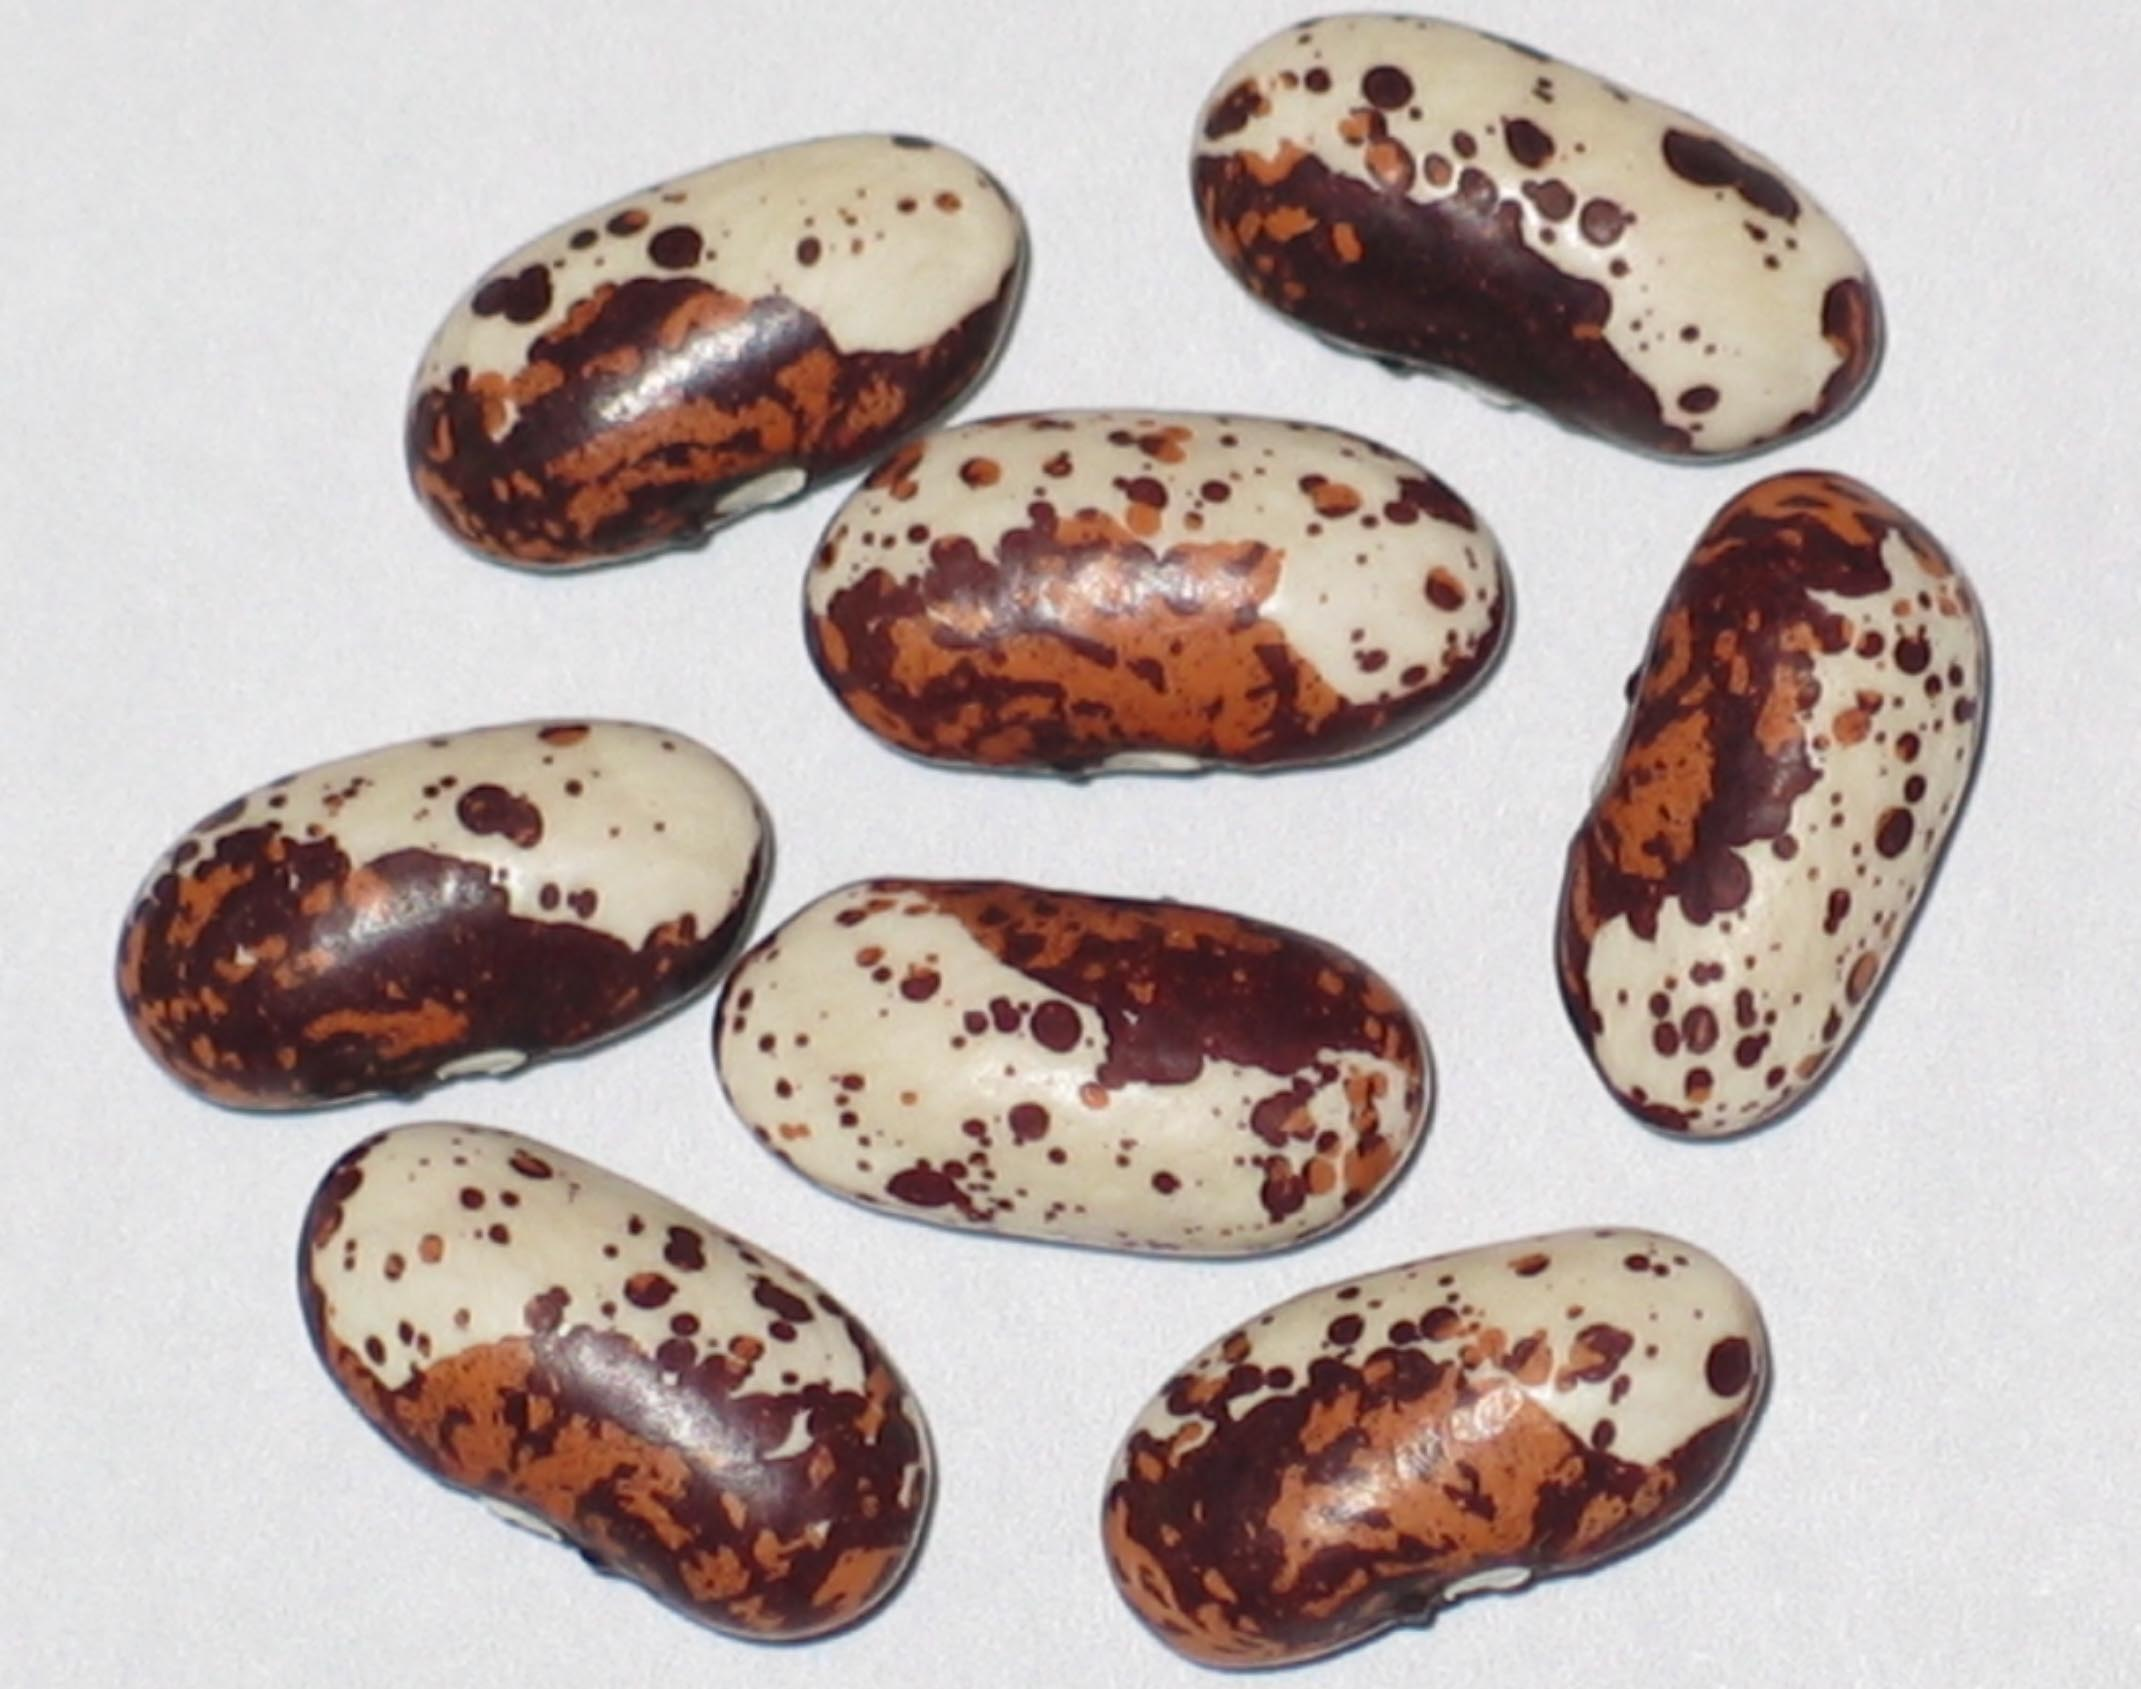 image of Frauenbohne beans